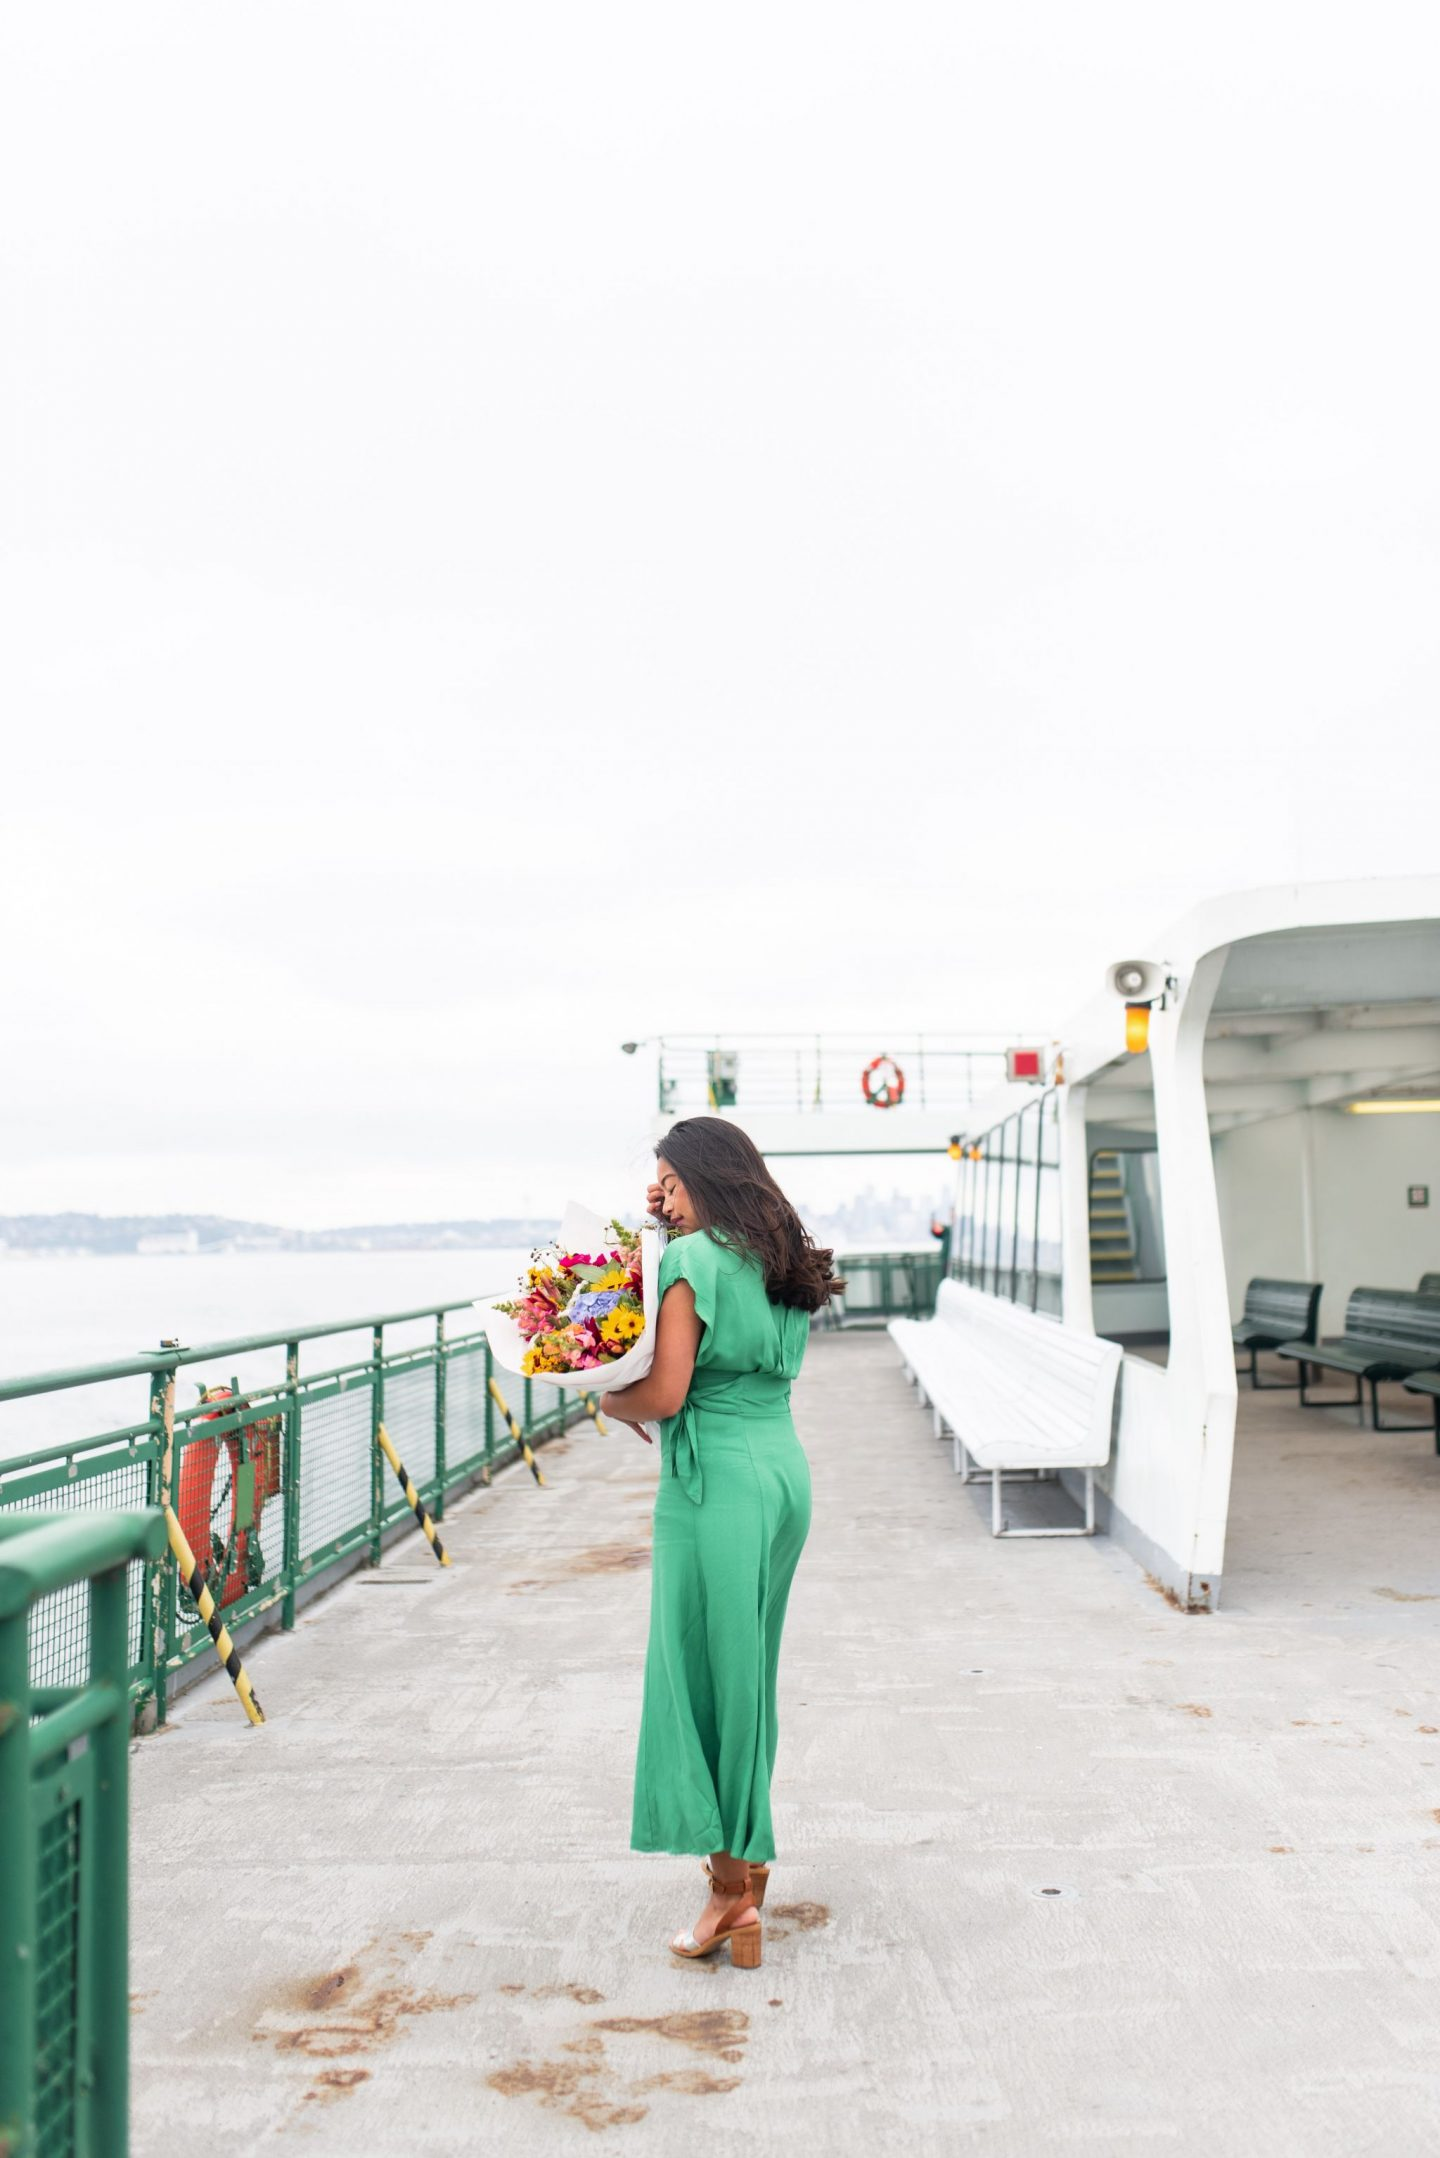 Ferry ride to Bainbridge Island - Bainbridge Island's Most Instagram Worthy Places – Bainbridge Island things to do – things to see on Bainbridge Island - Bainbridge island photo – what can you do on Bainbridge Island – pictures of Bainbridge Island Washington – Bainbridge Island tourism